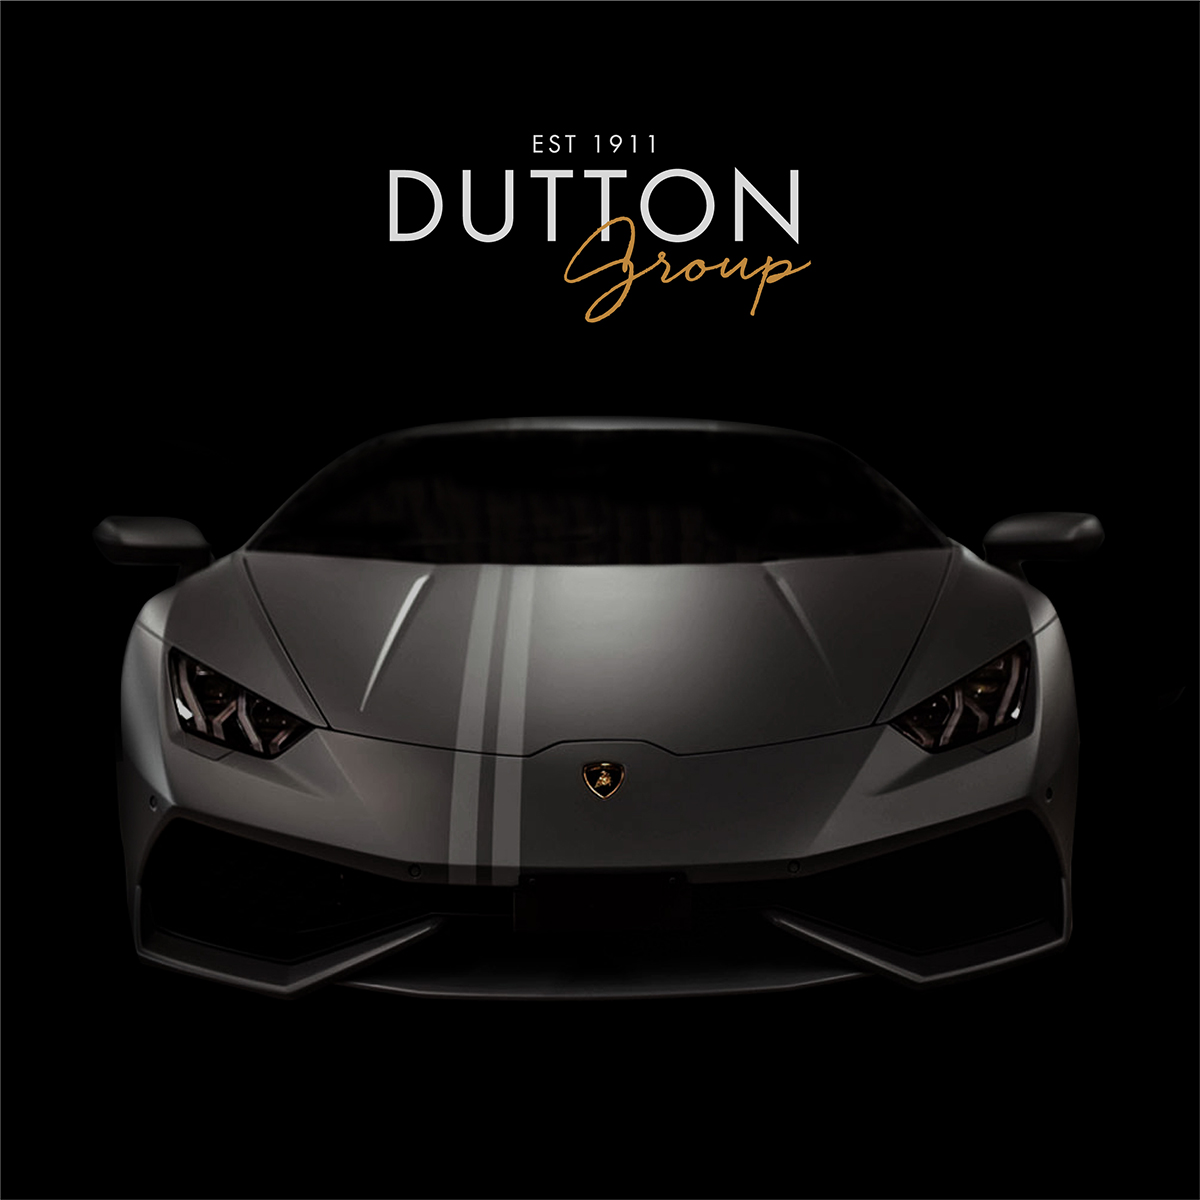 Davidson Branding Digital Dutton Group Stealth Black Lamborghini